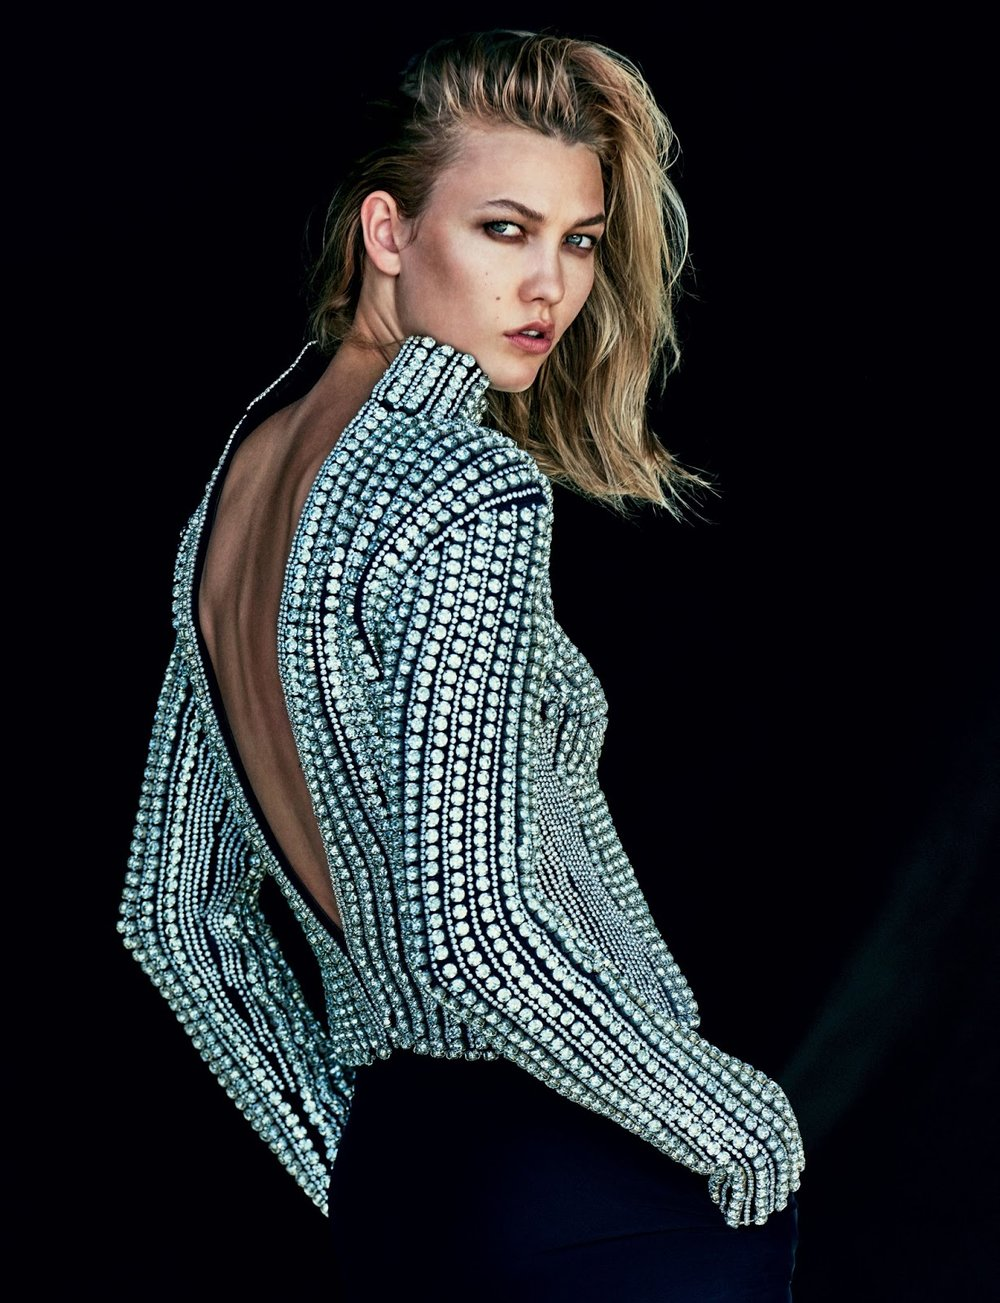 Vogue Mexico October 2016 - karlie-kloss-chris-colls- (6).jpg